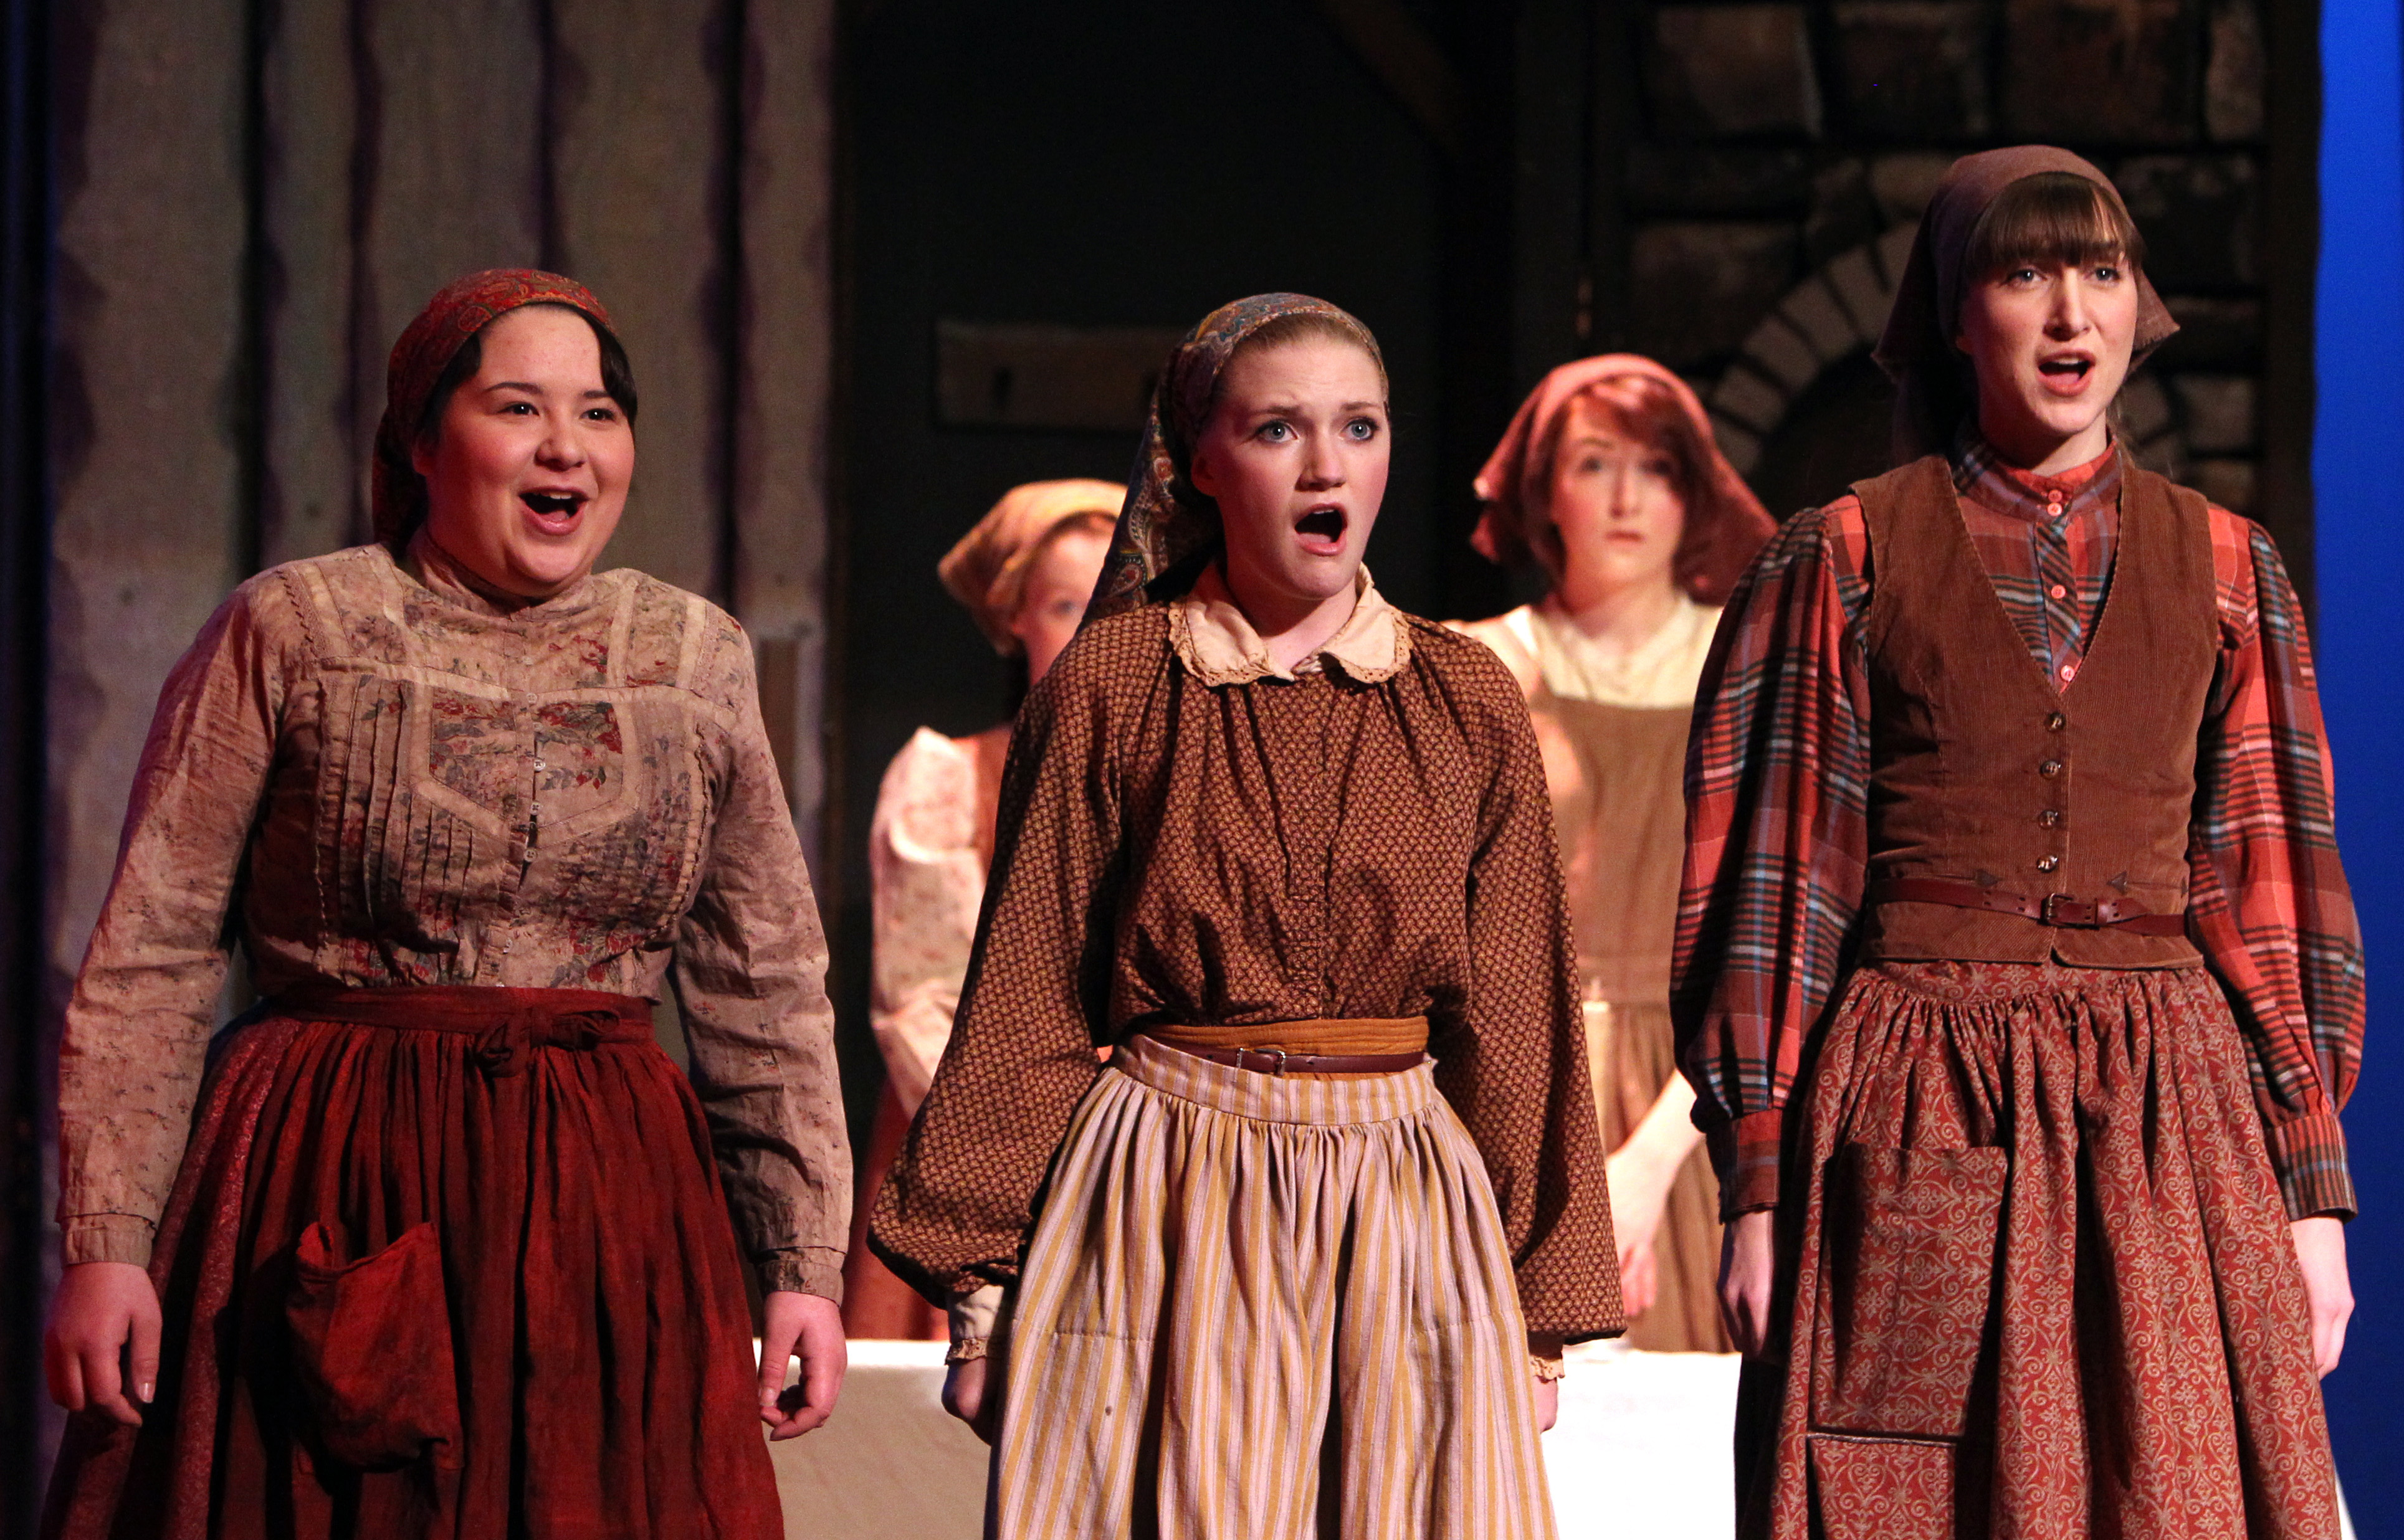 Fifty Years of Fiddler on the Roof - A Rousing Rendition at